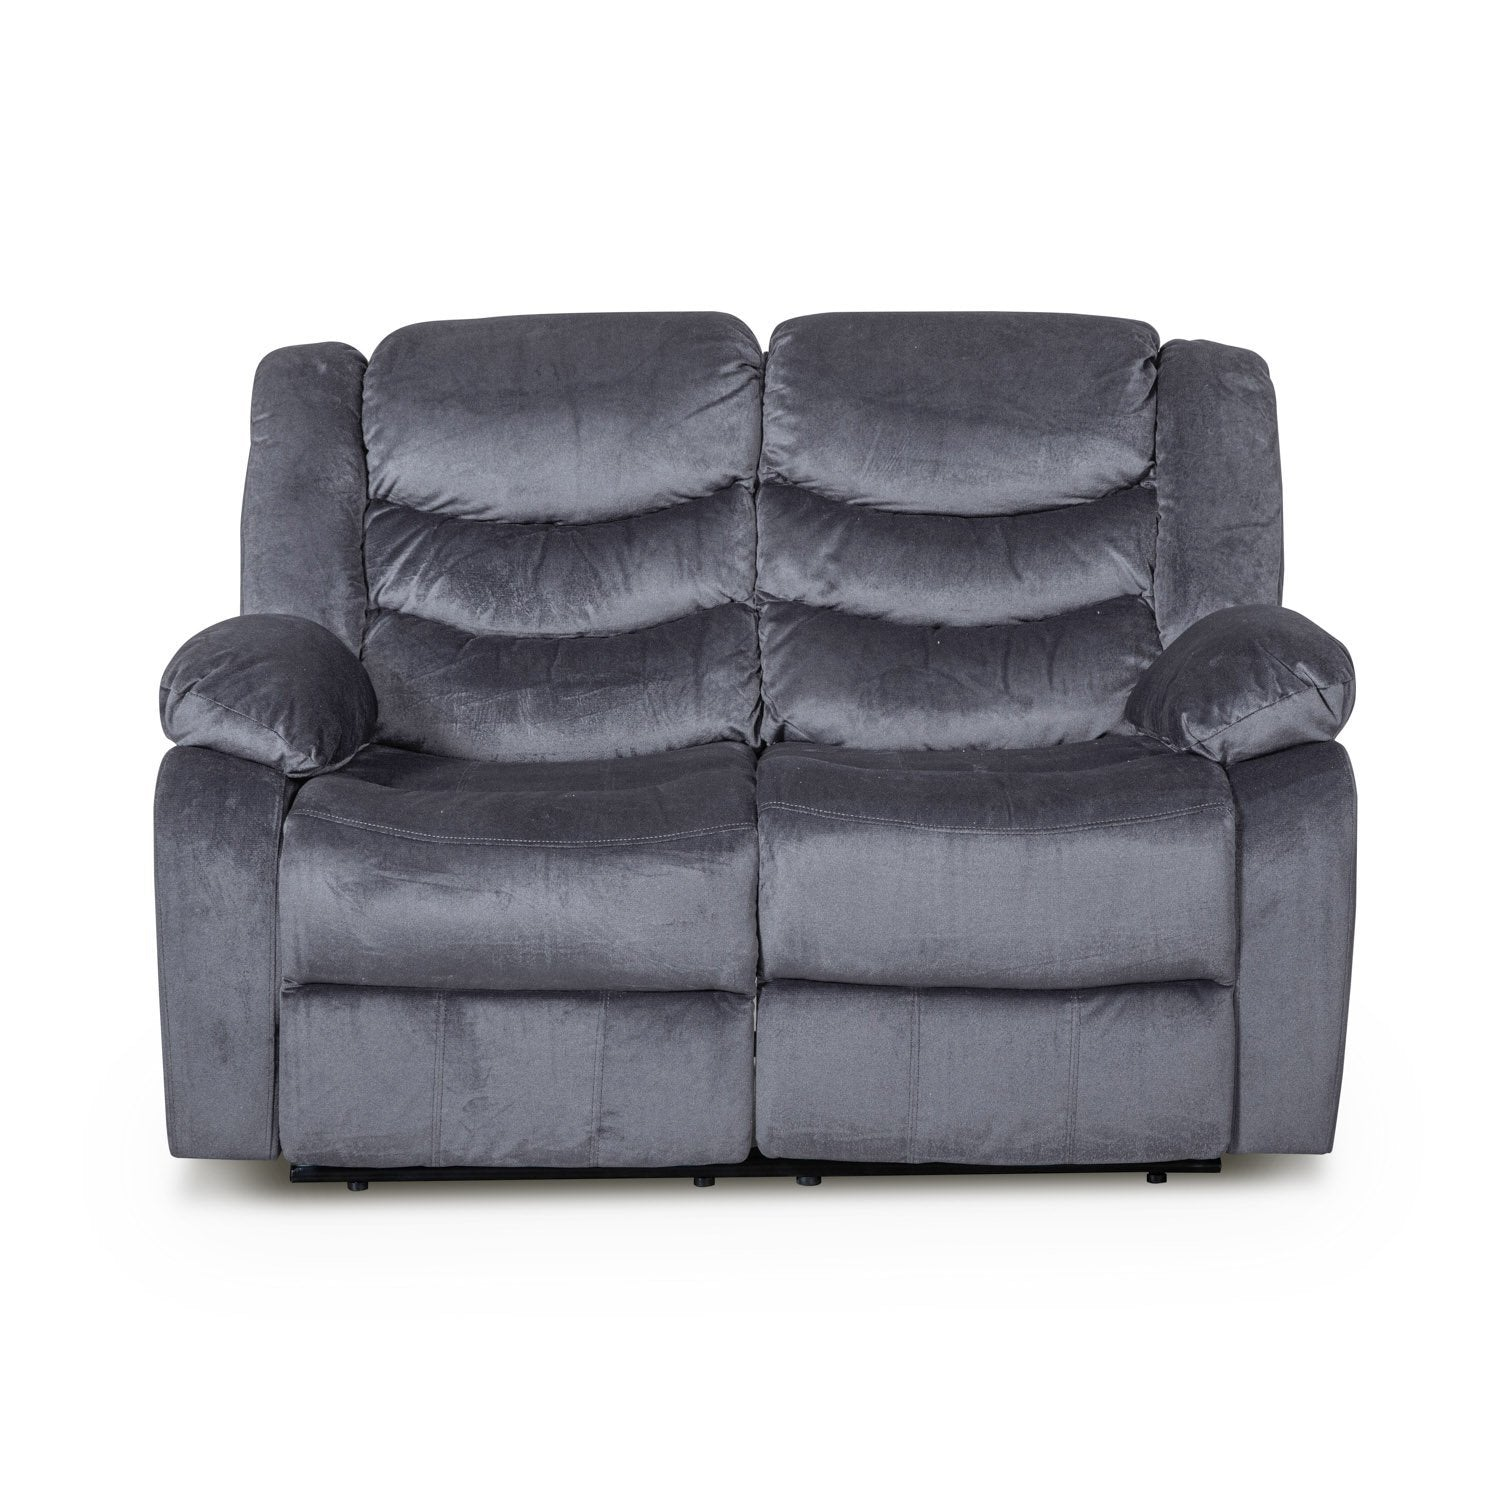 Surprising Drew Manual Reclining Loveseat Gmtry Best Dining Table And Chair Ideas Images Gmtryco